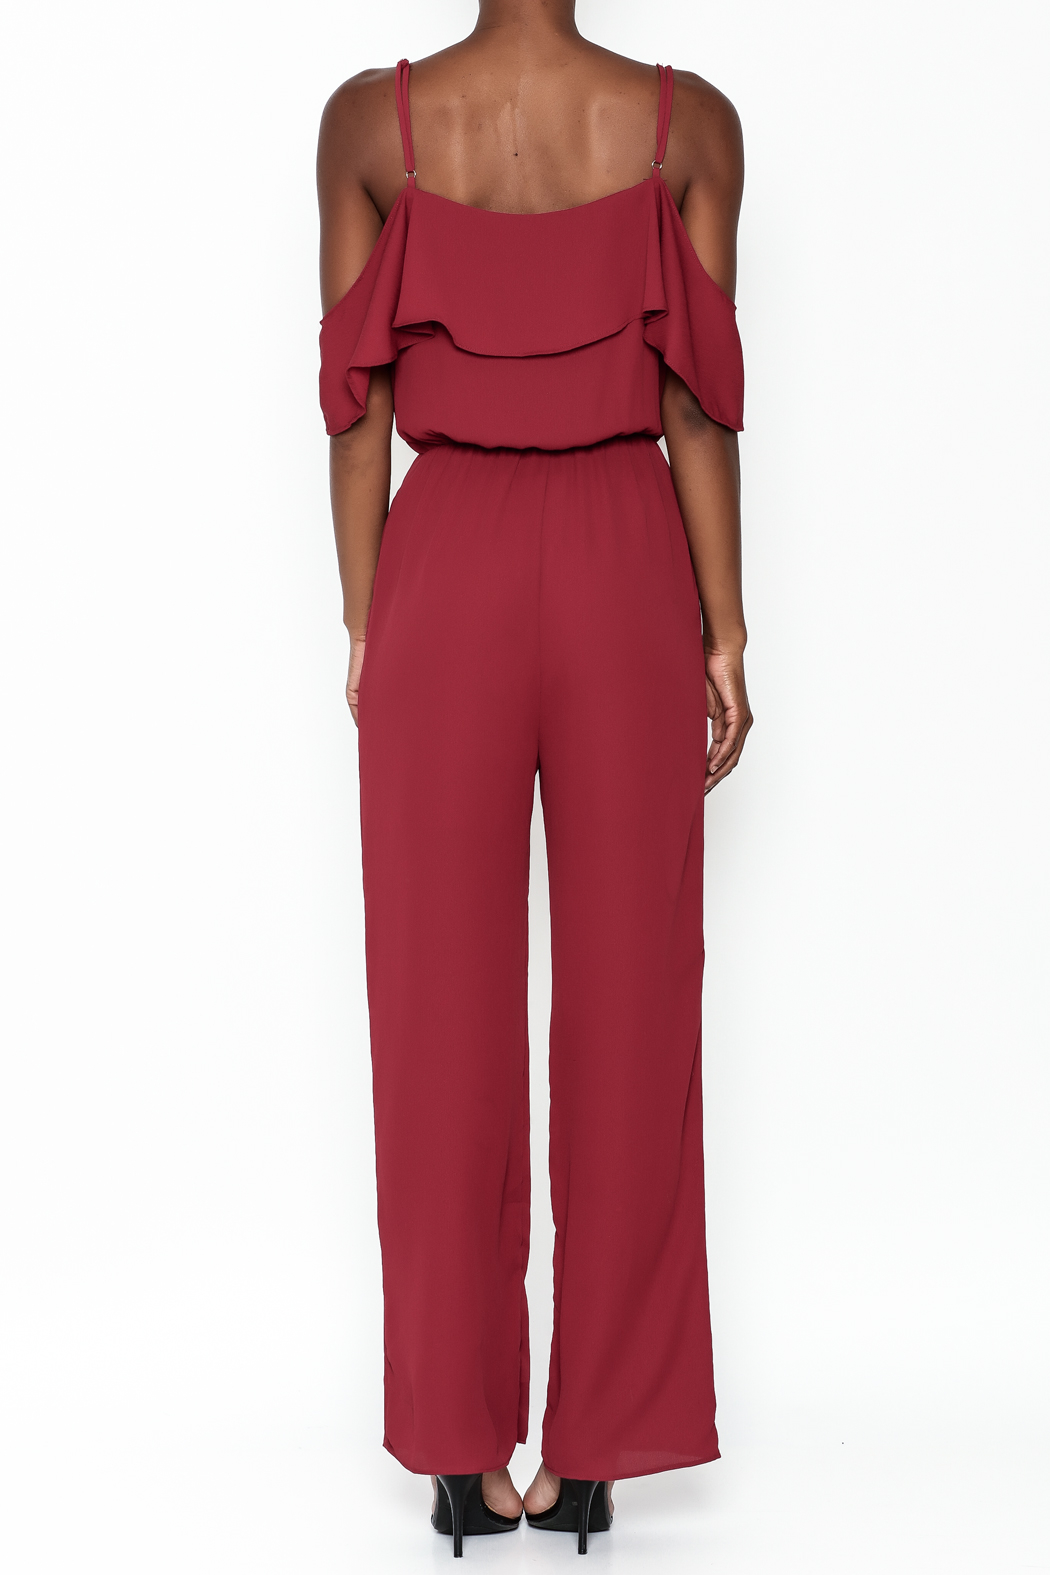 Everly Deep Red Jumpsuit - Back Cropped Image